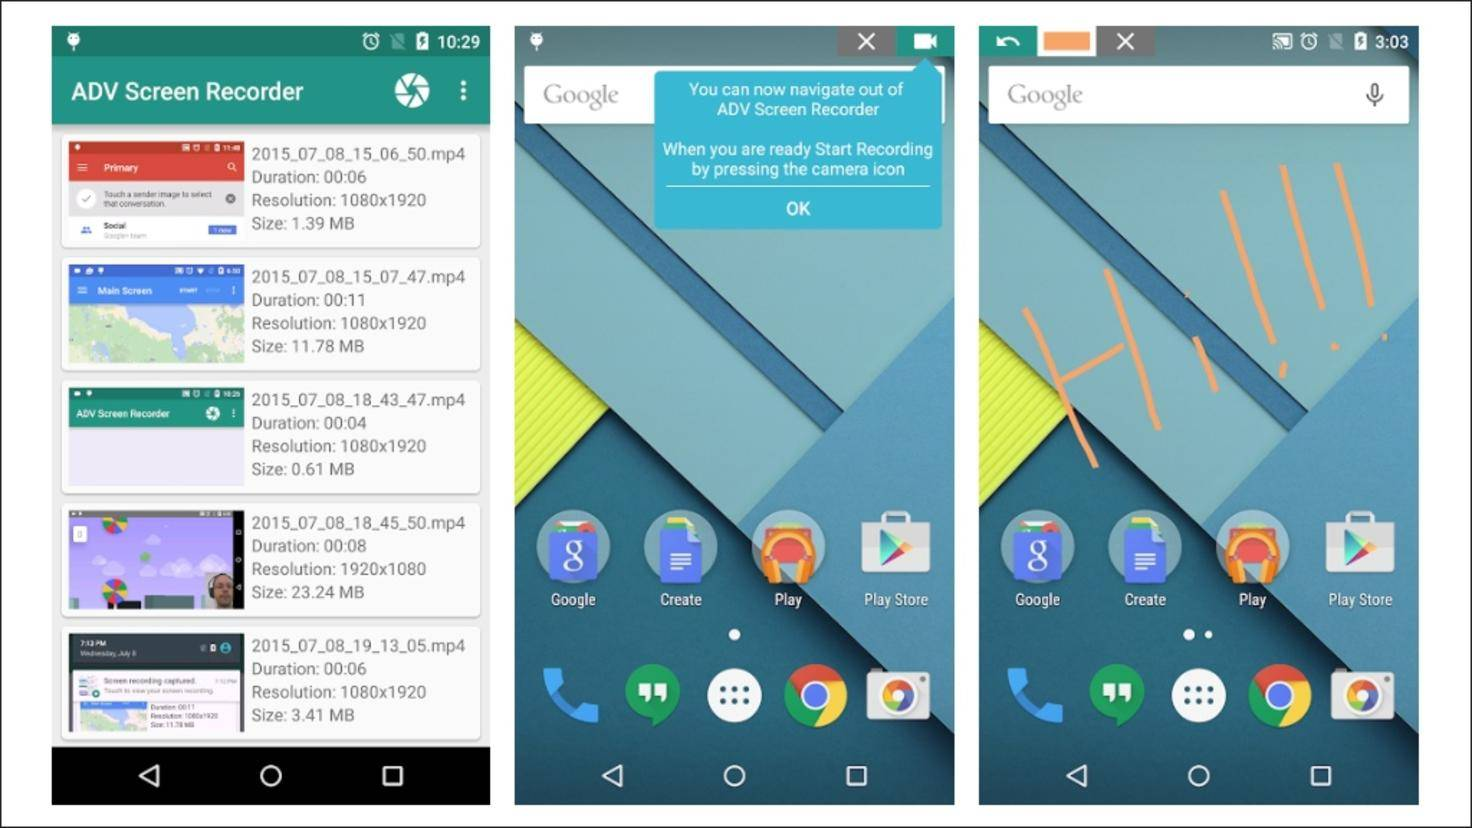 ADV-Screen-Recorder-Android-App